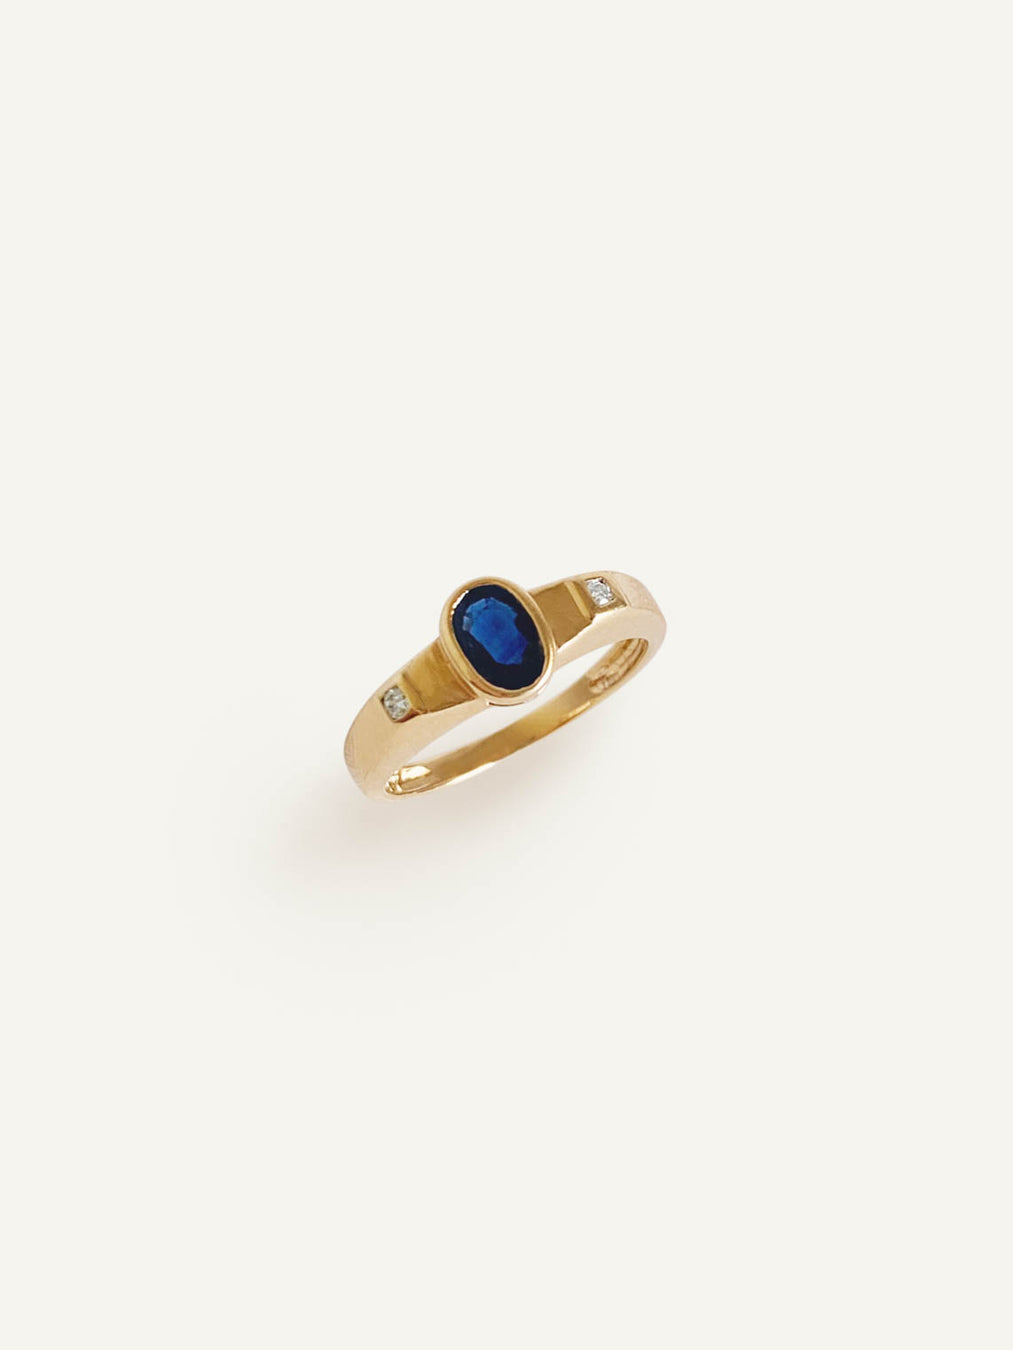 14k Oval Sapphire Ring